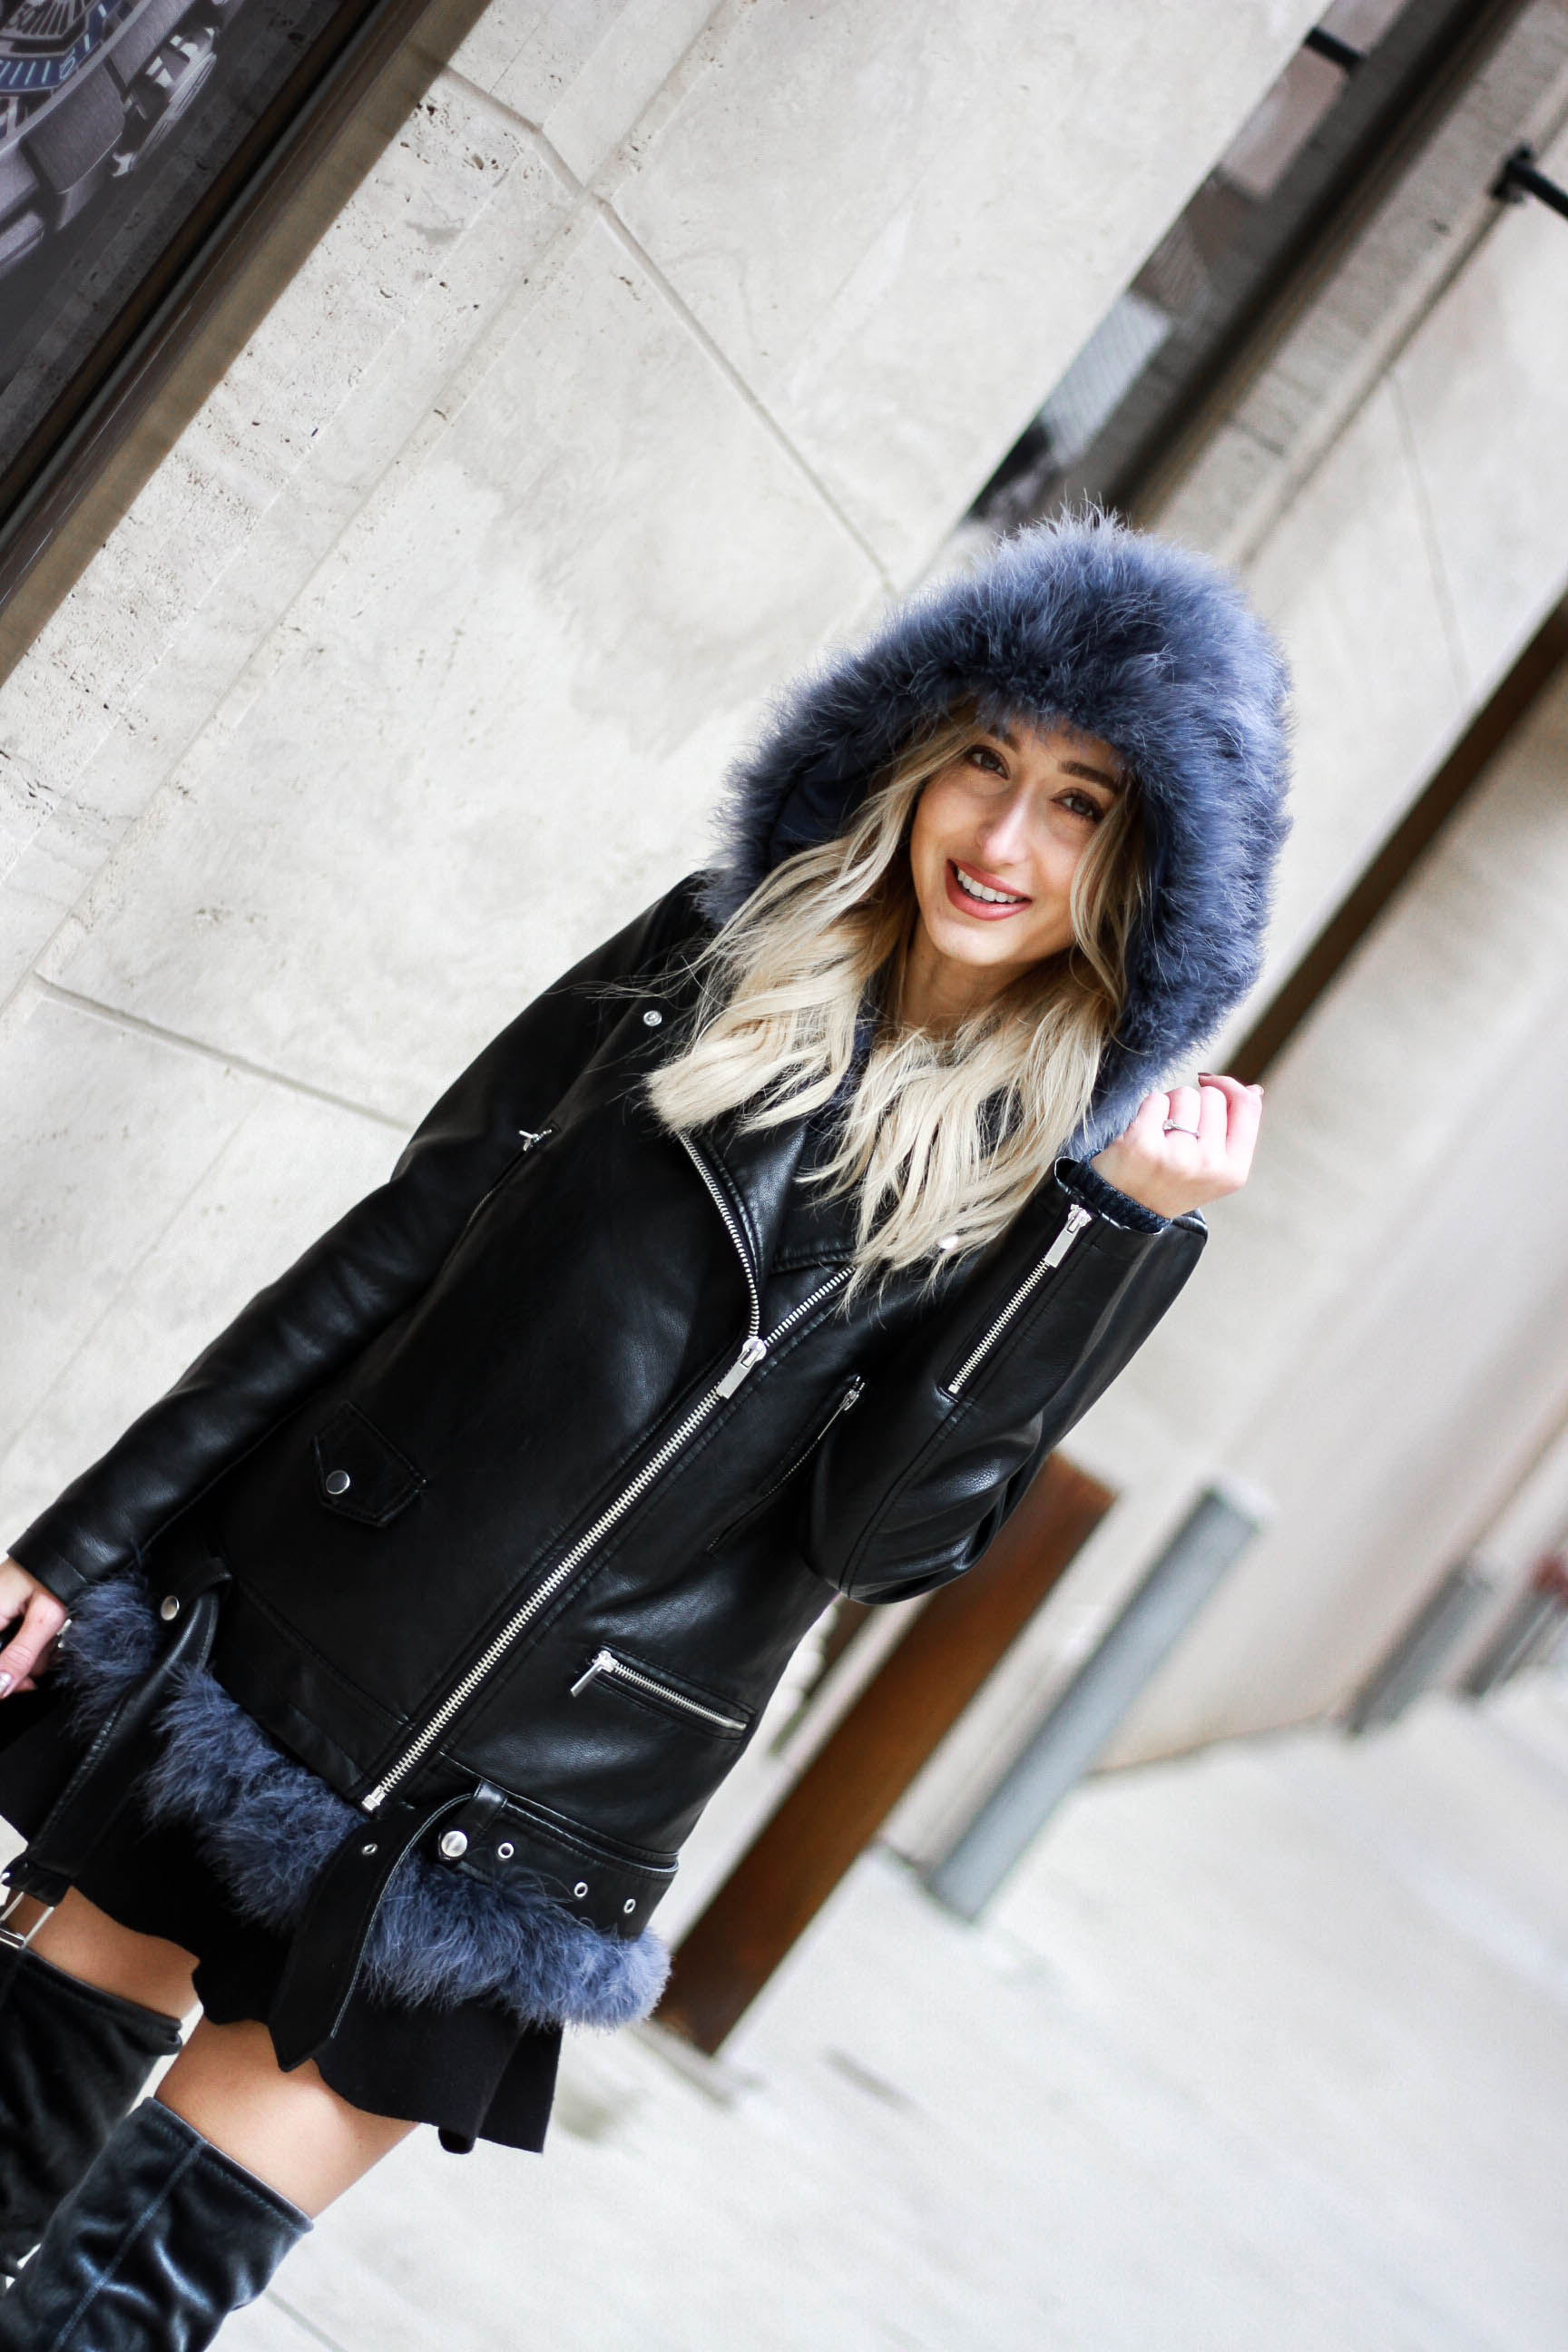 Mini Skirt Winter Outfit